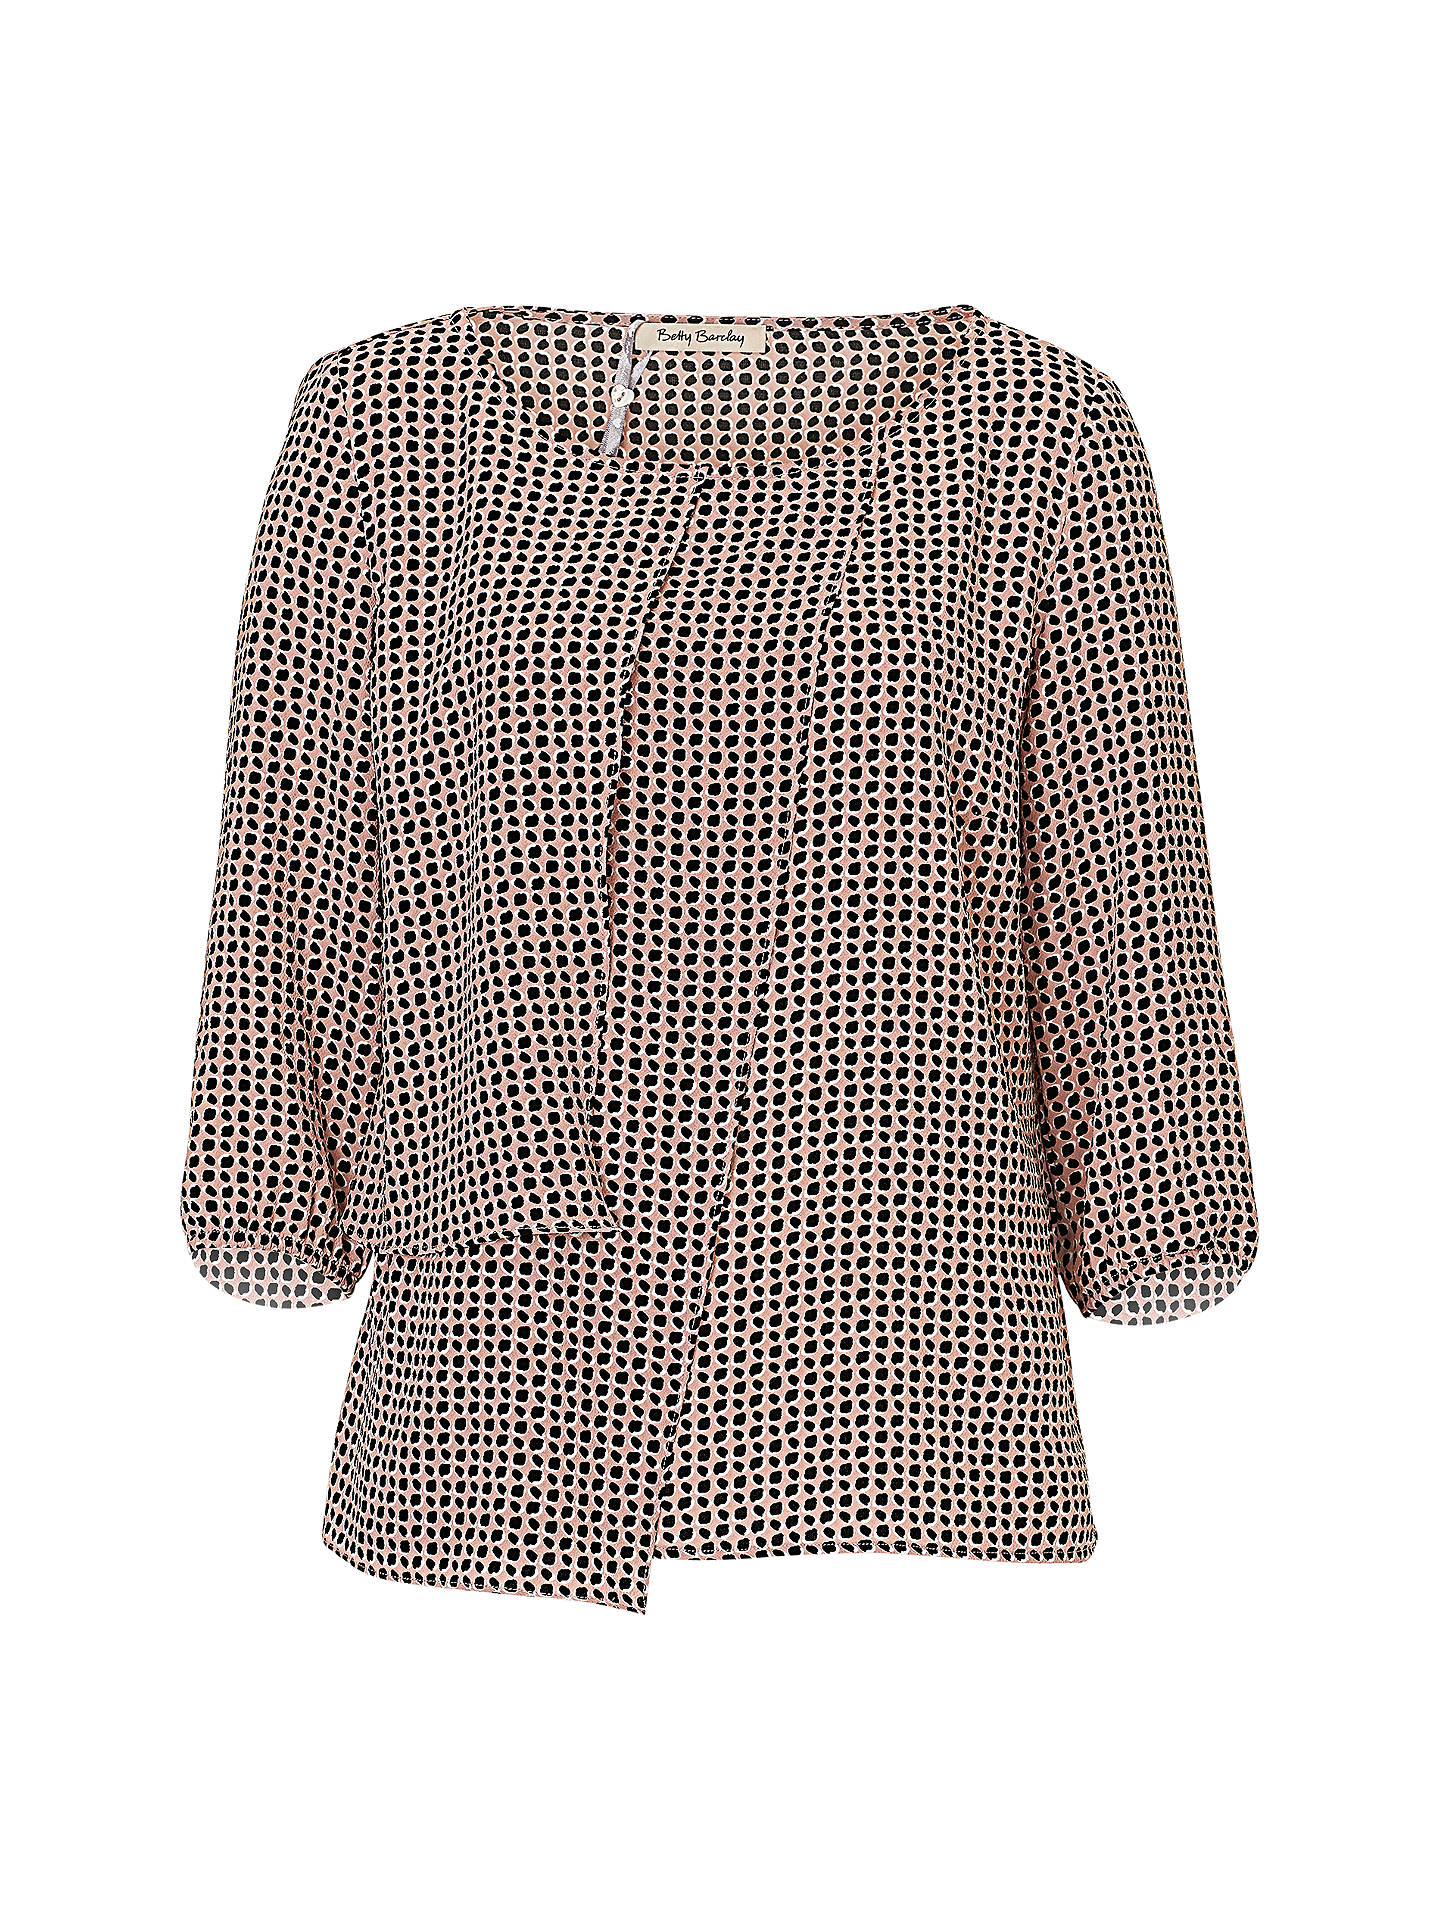 BuyBetty Barclay Wrap Effect Blouse, Black/Rosé, 8 Online at johnlewis.com